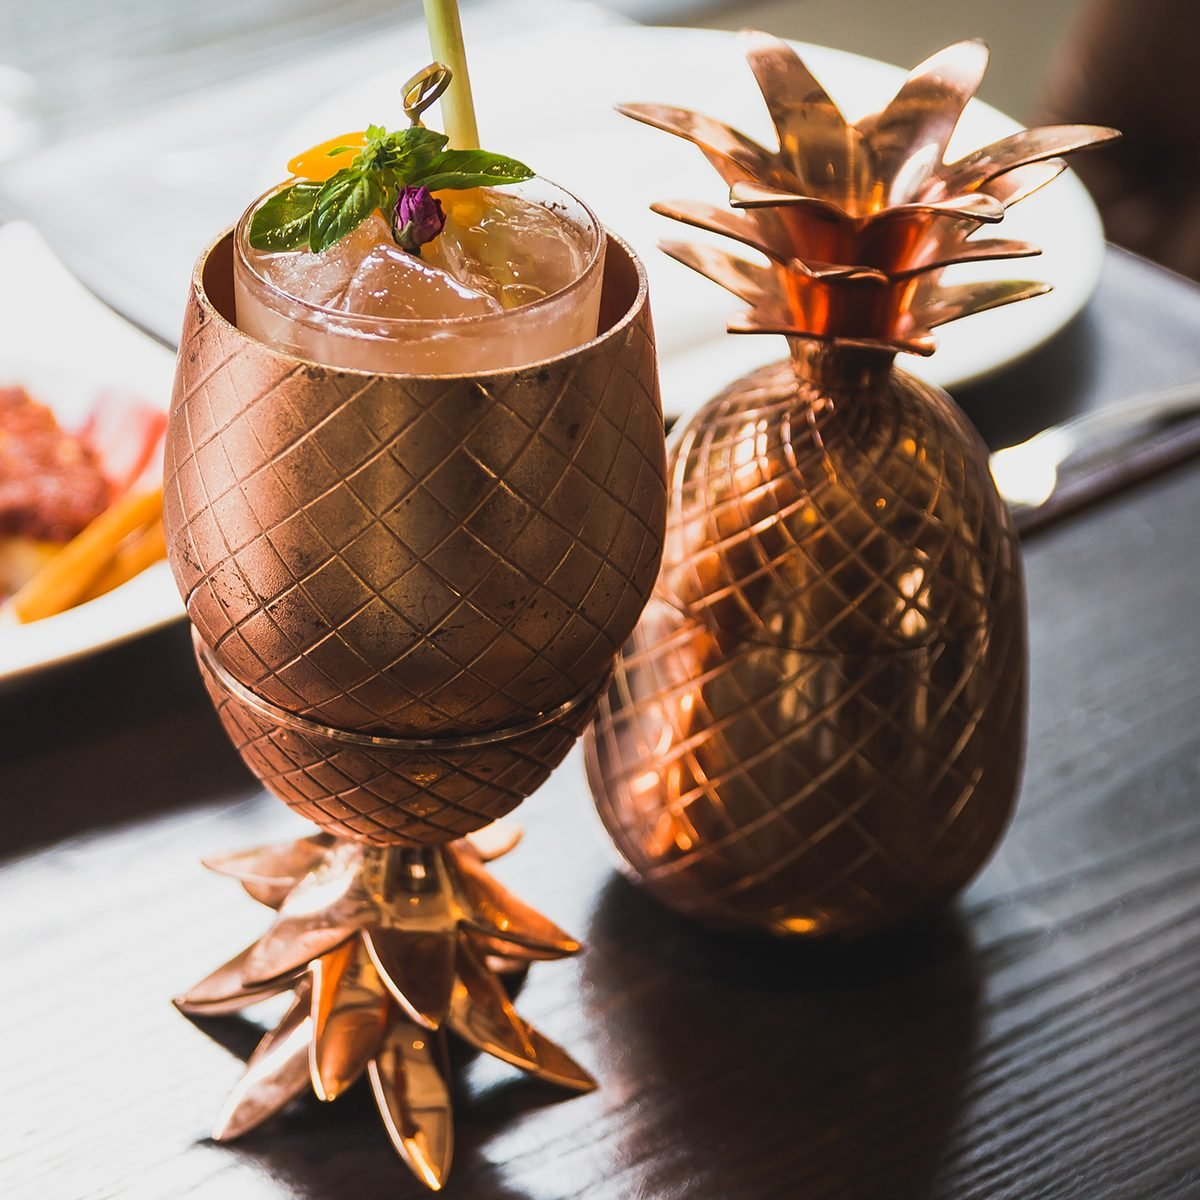 Cocktail served inside copper pineapple cup with dishes in the background. ; Shutterstock ID 1080759941; Job (TFH, TOH, RD, BNB, CWM, CM): TOH